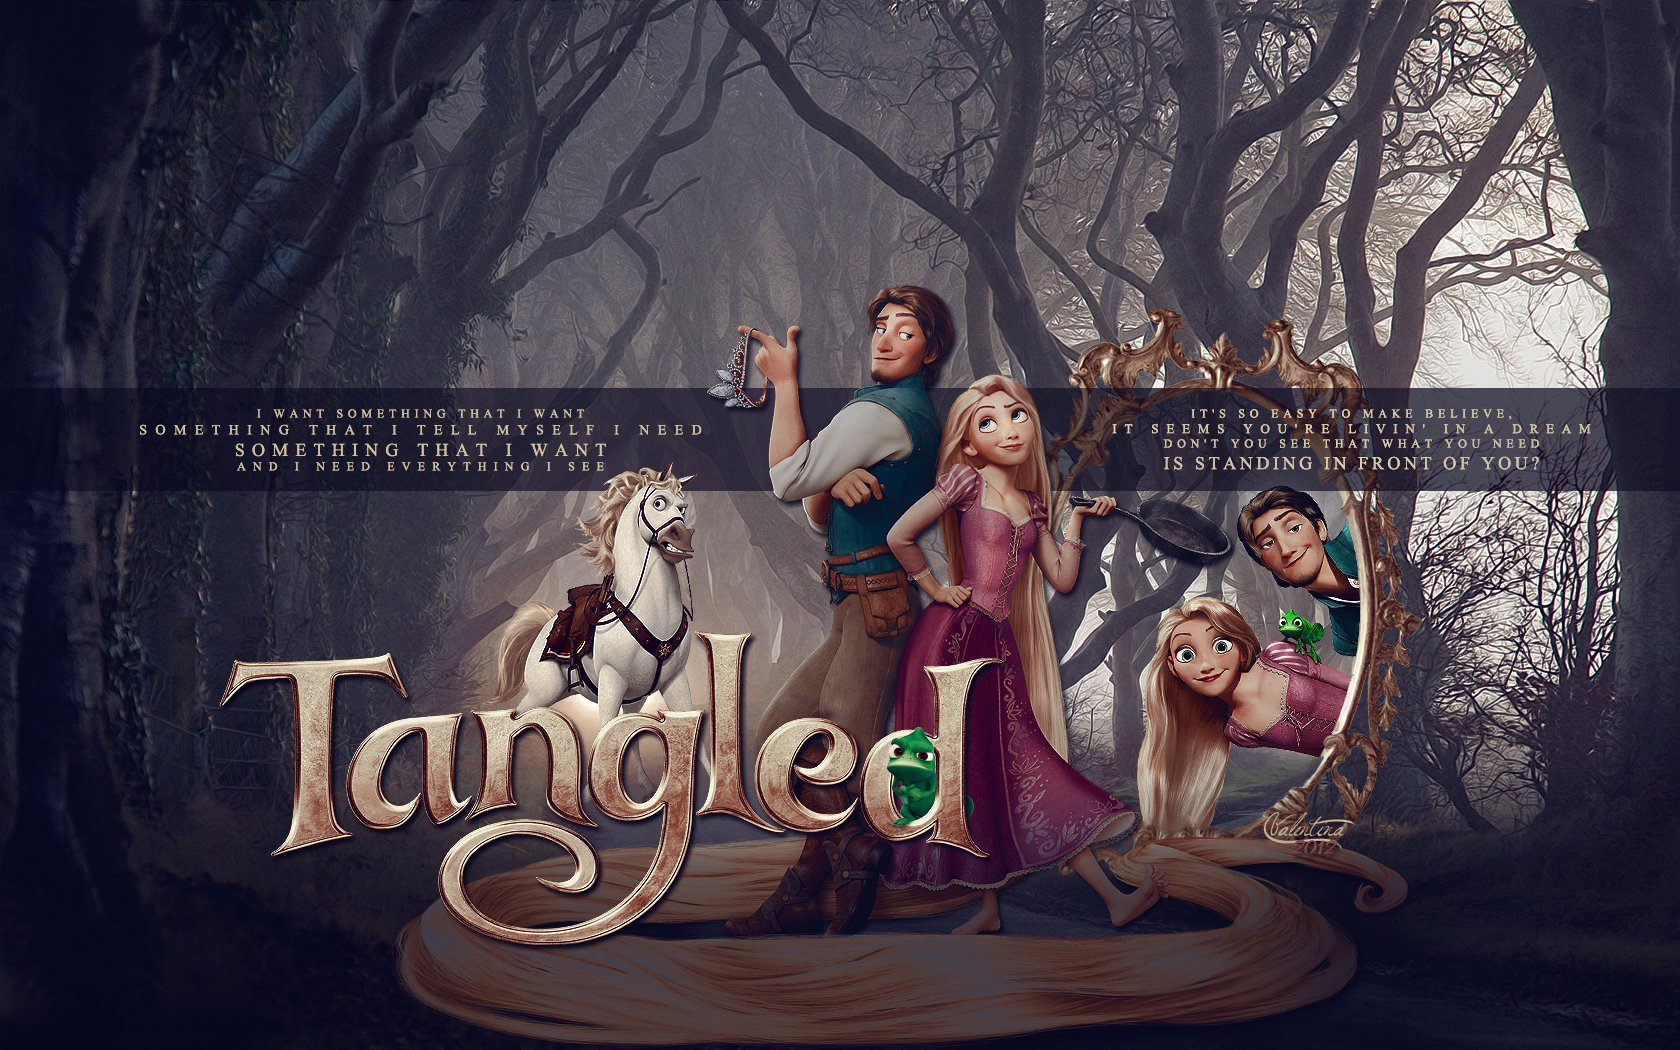 Tangled Wallpaper   Tangled Wallpaper 30575278 1680x1050